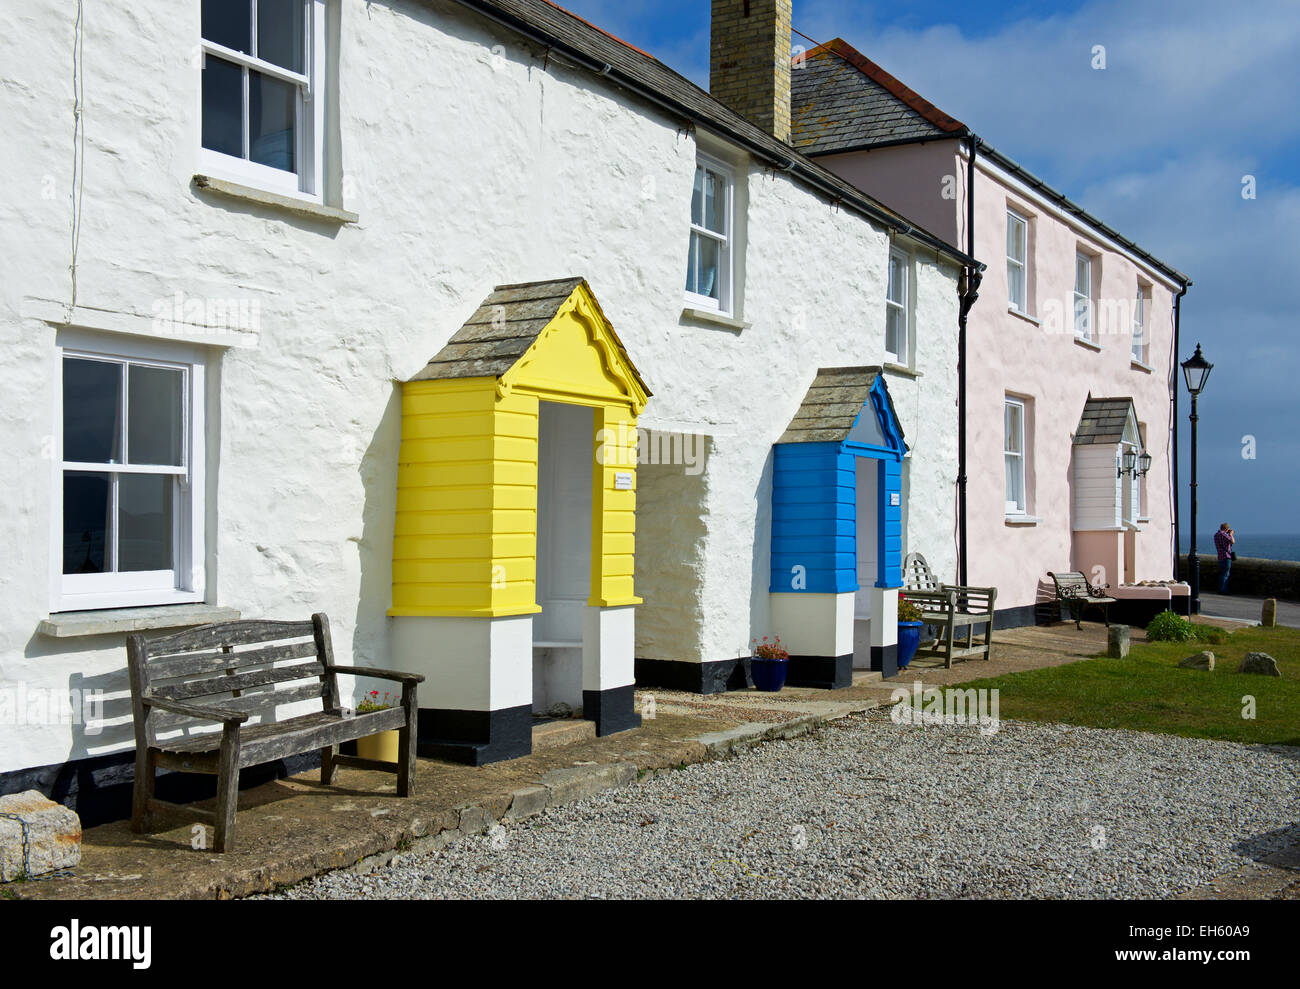 Cottages in Charlestown, Cornwall, England UK - Stock Image